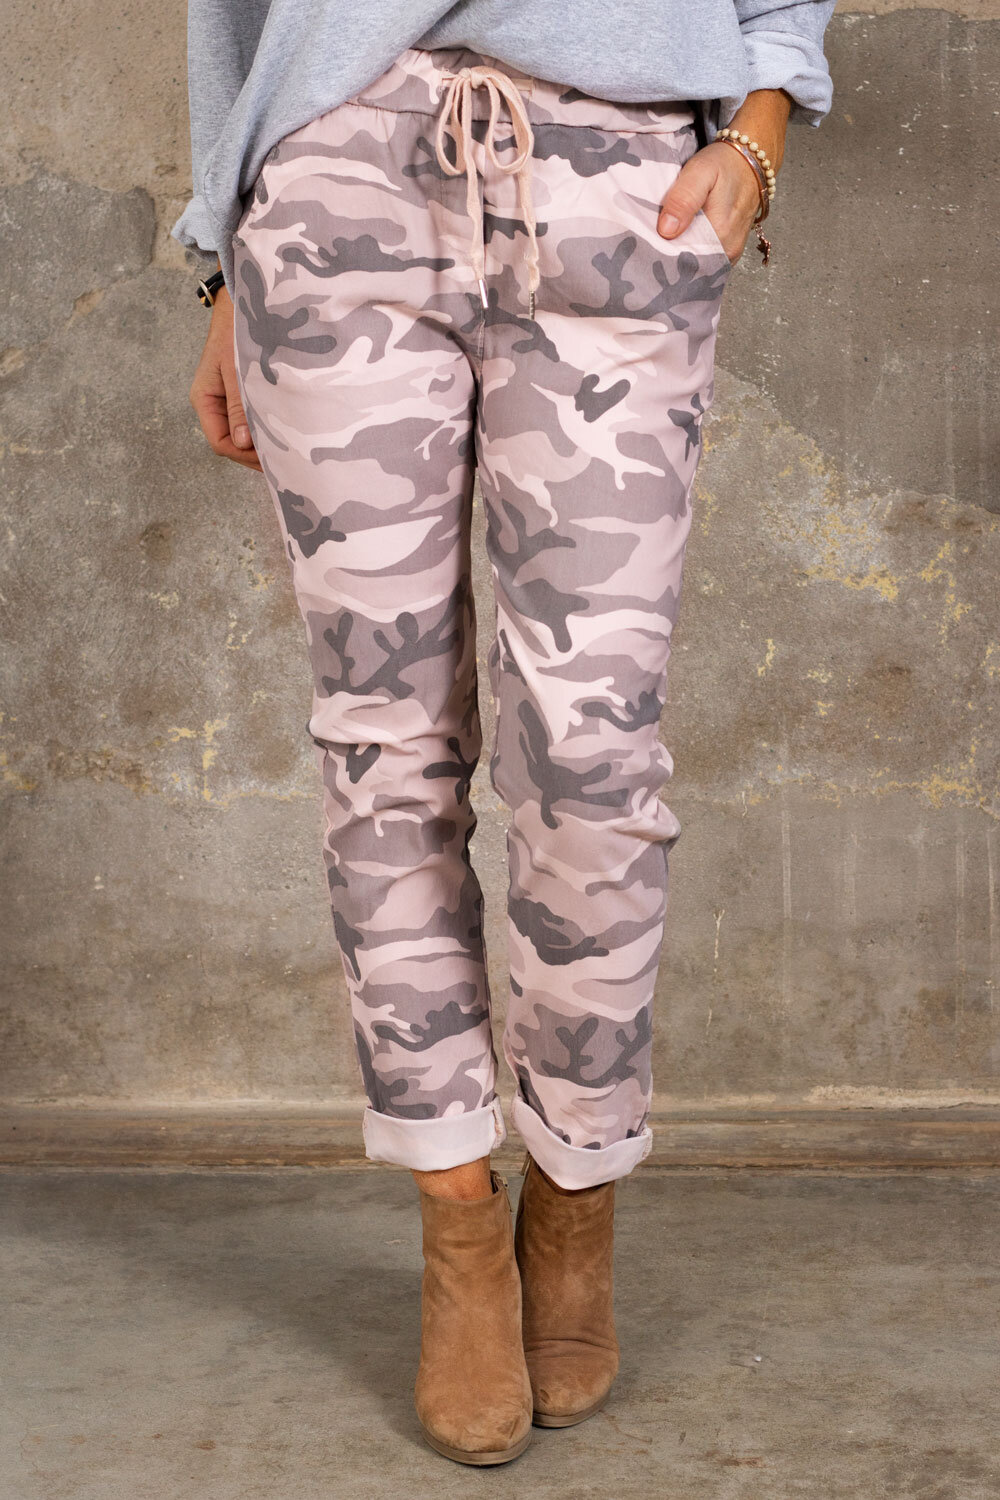 Stretchy pants 3385 - Camouflage - Pink